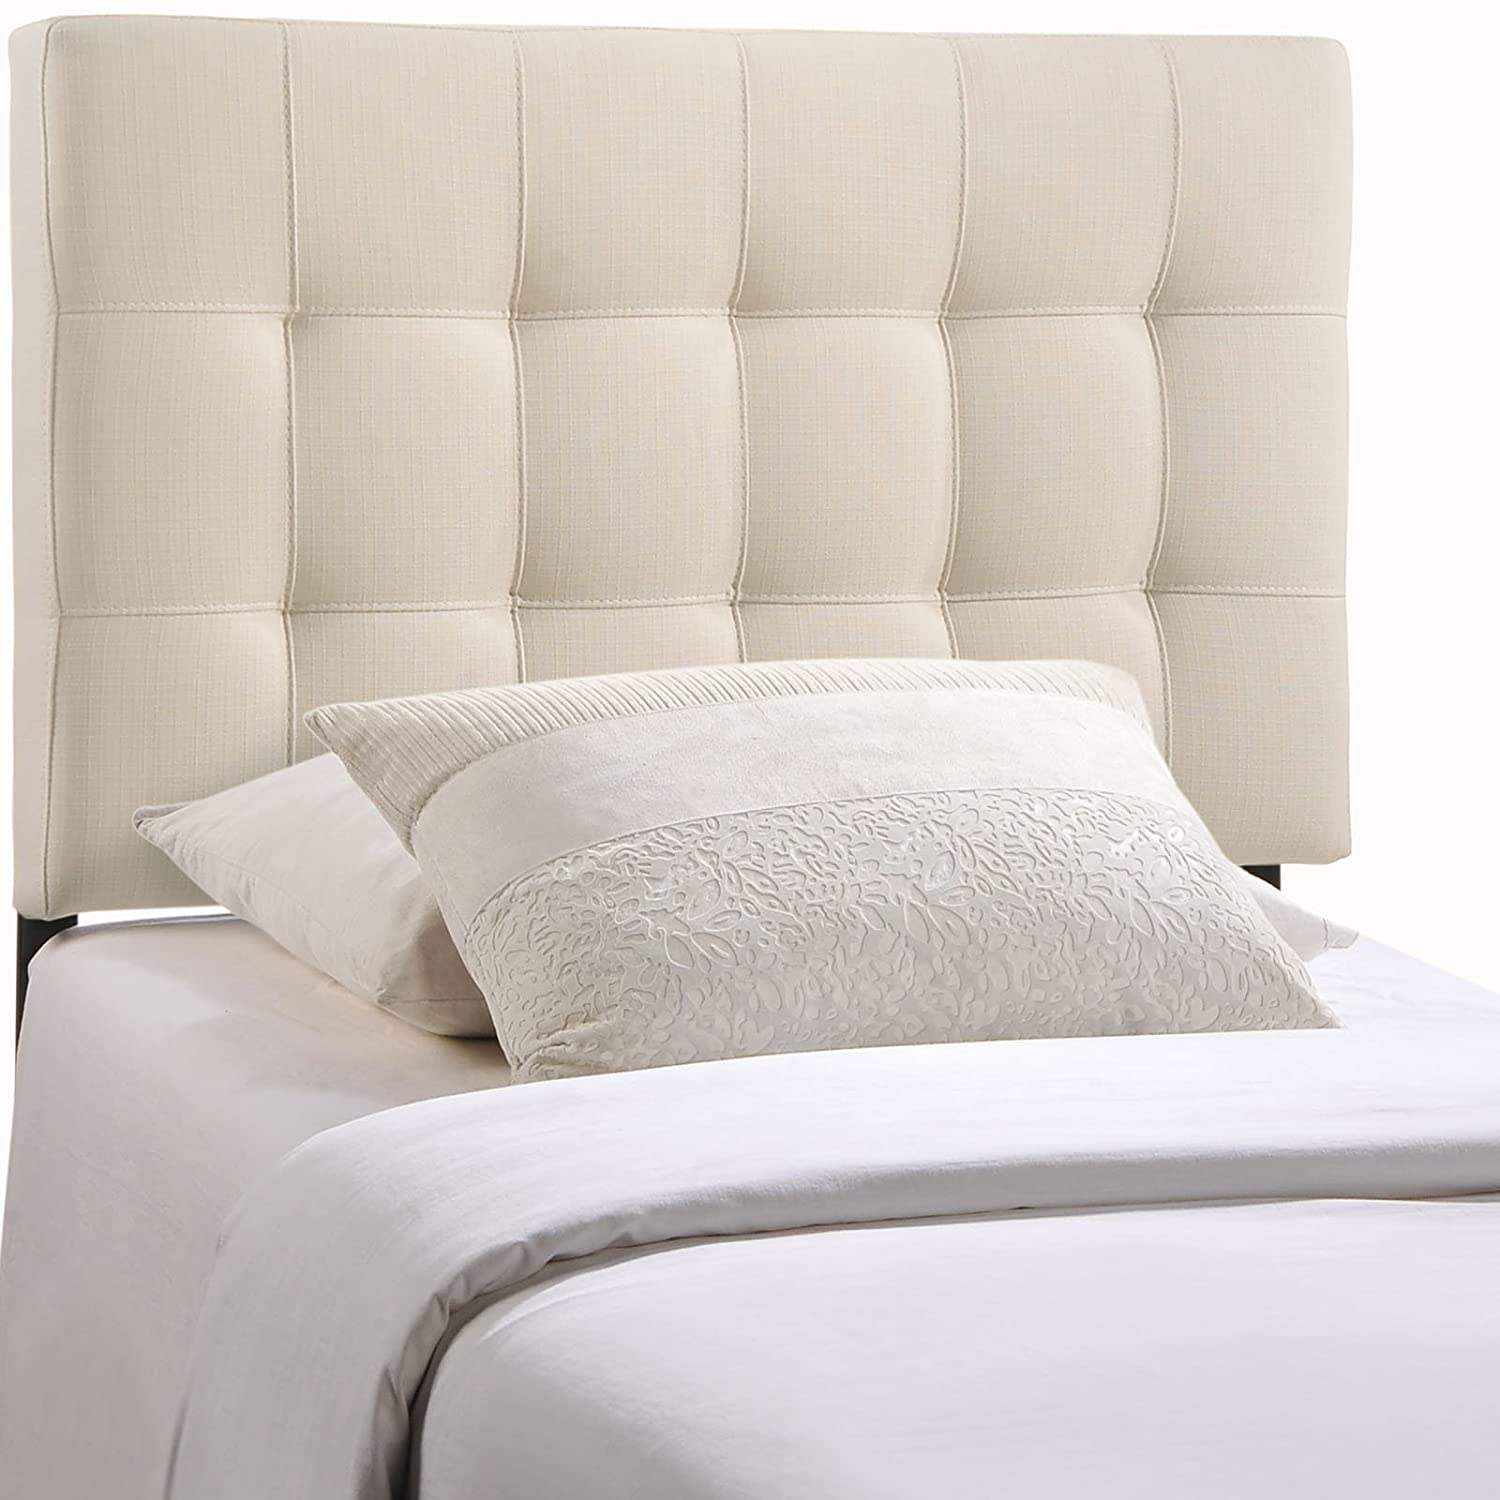 queen designs will to elegant headboard raise gallery fabric bed size bedroom a these view new in your